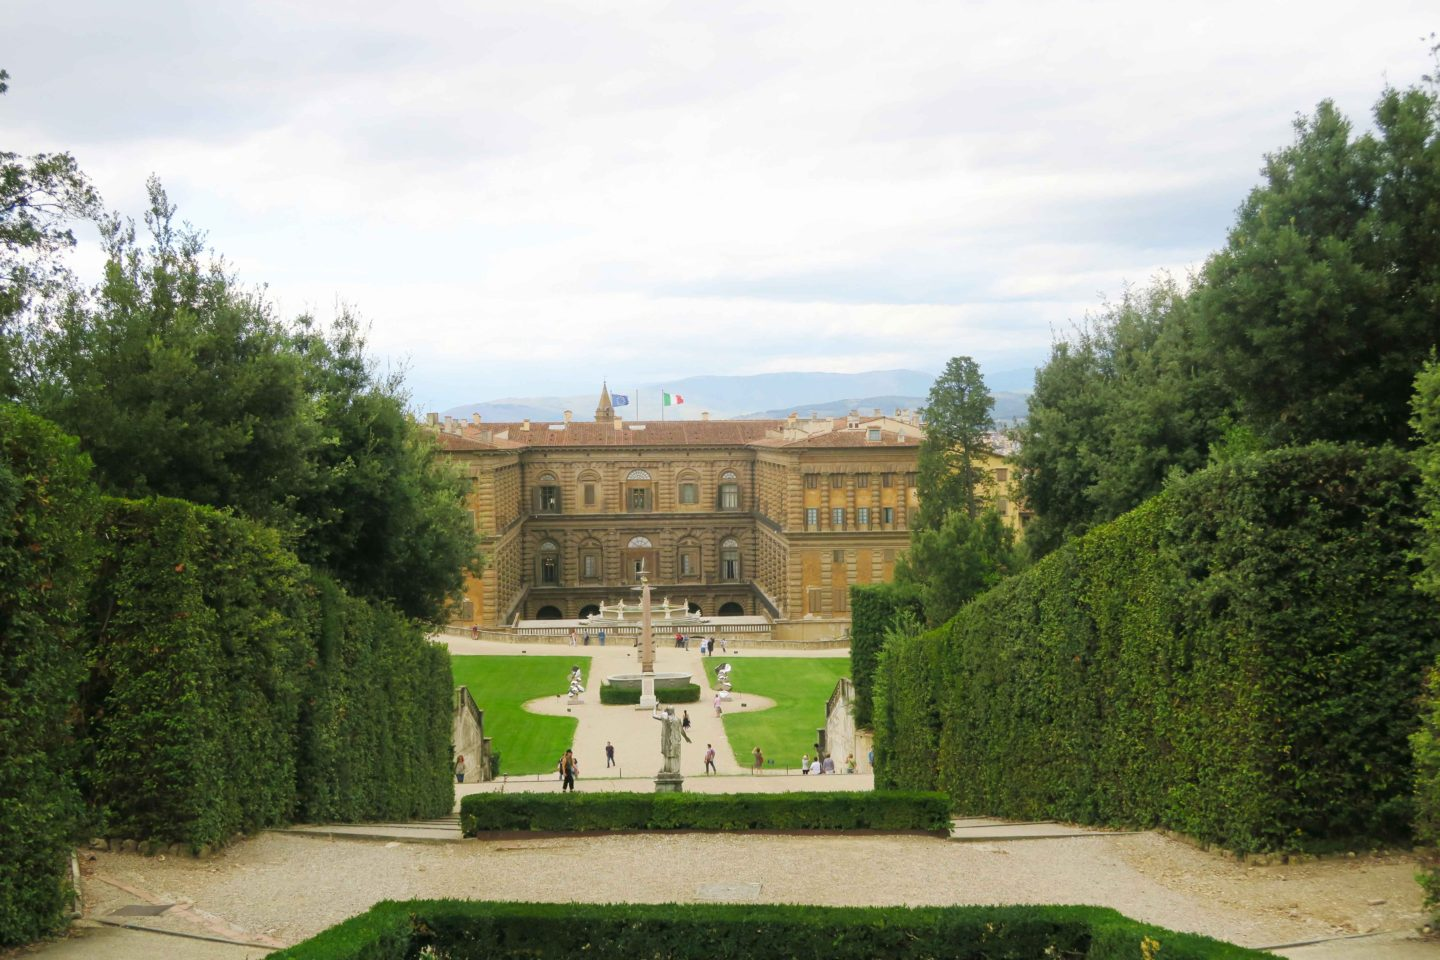 basilica di san lorenzo palace and garden in florence